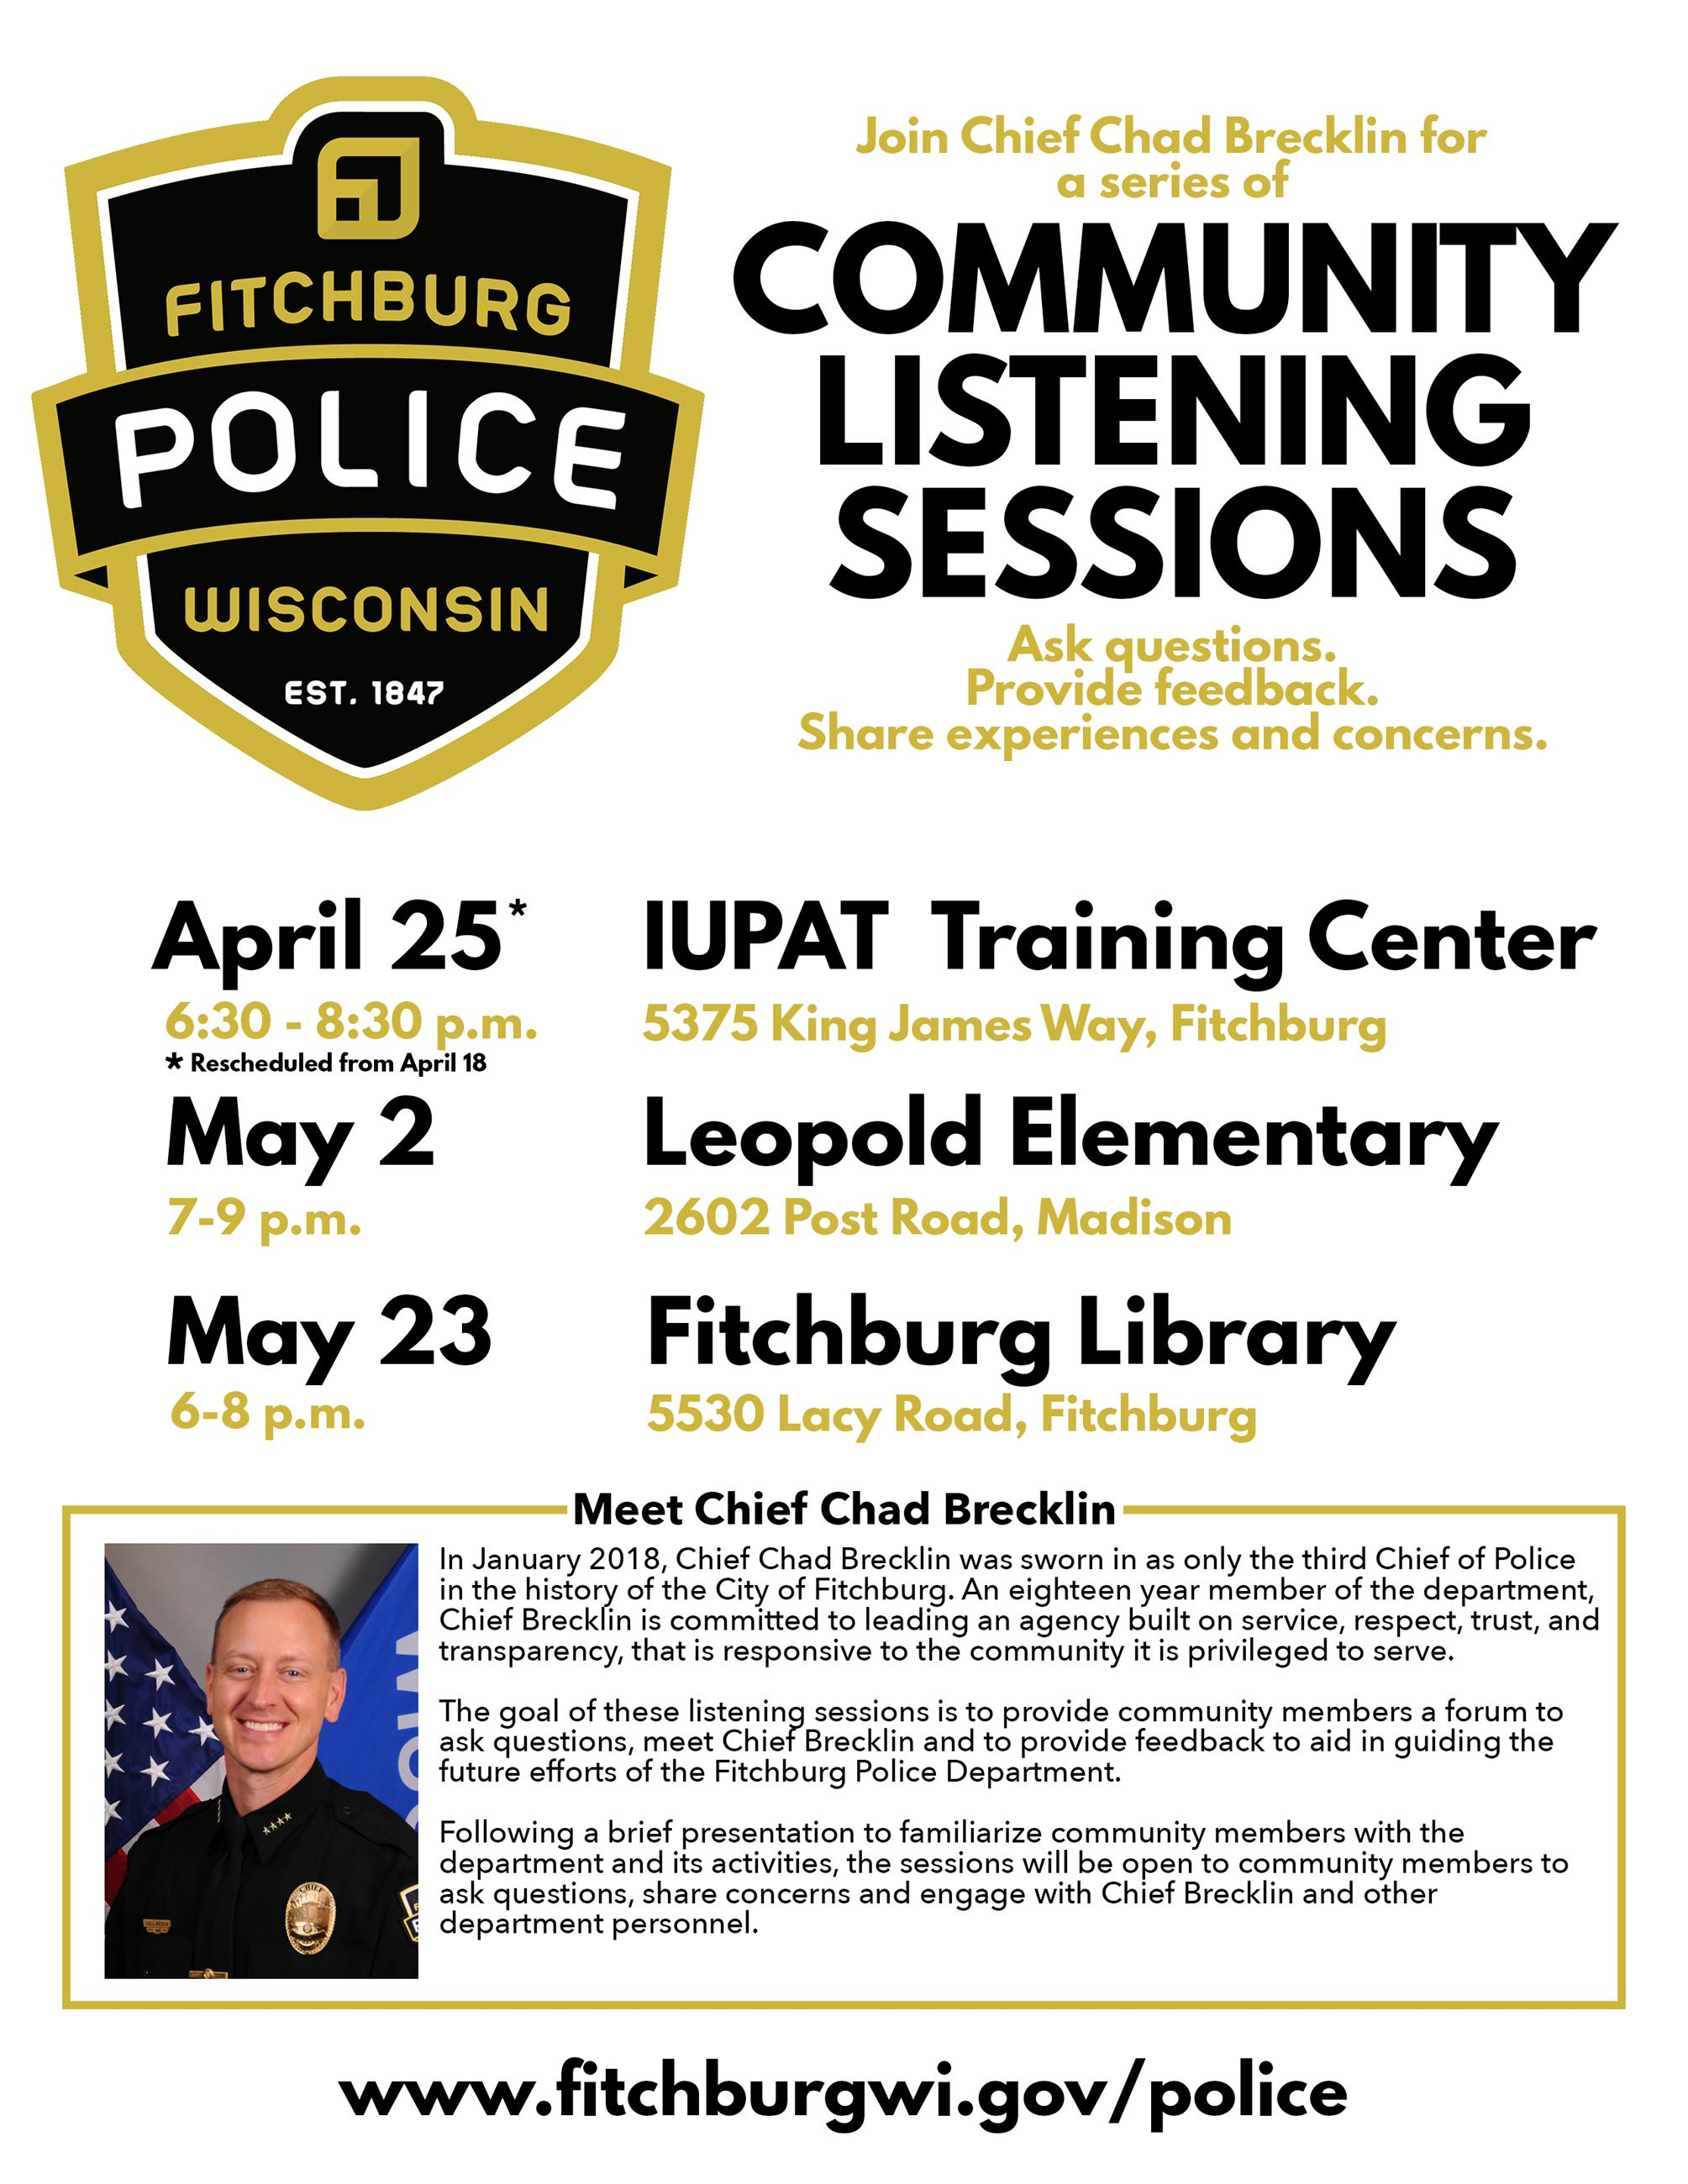 Fitchburg Police Listening Sessions Flyer_Update